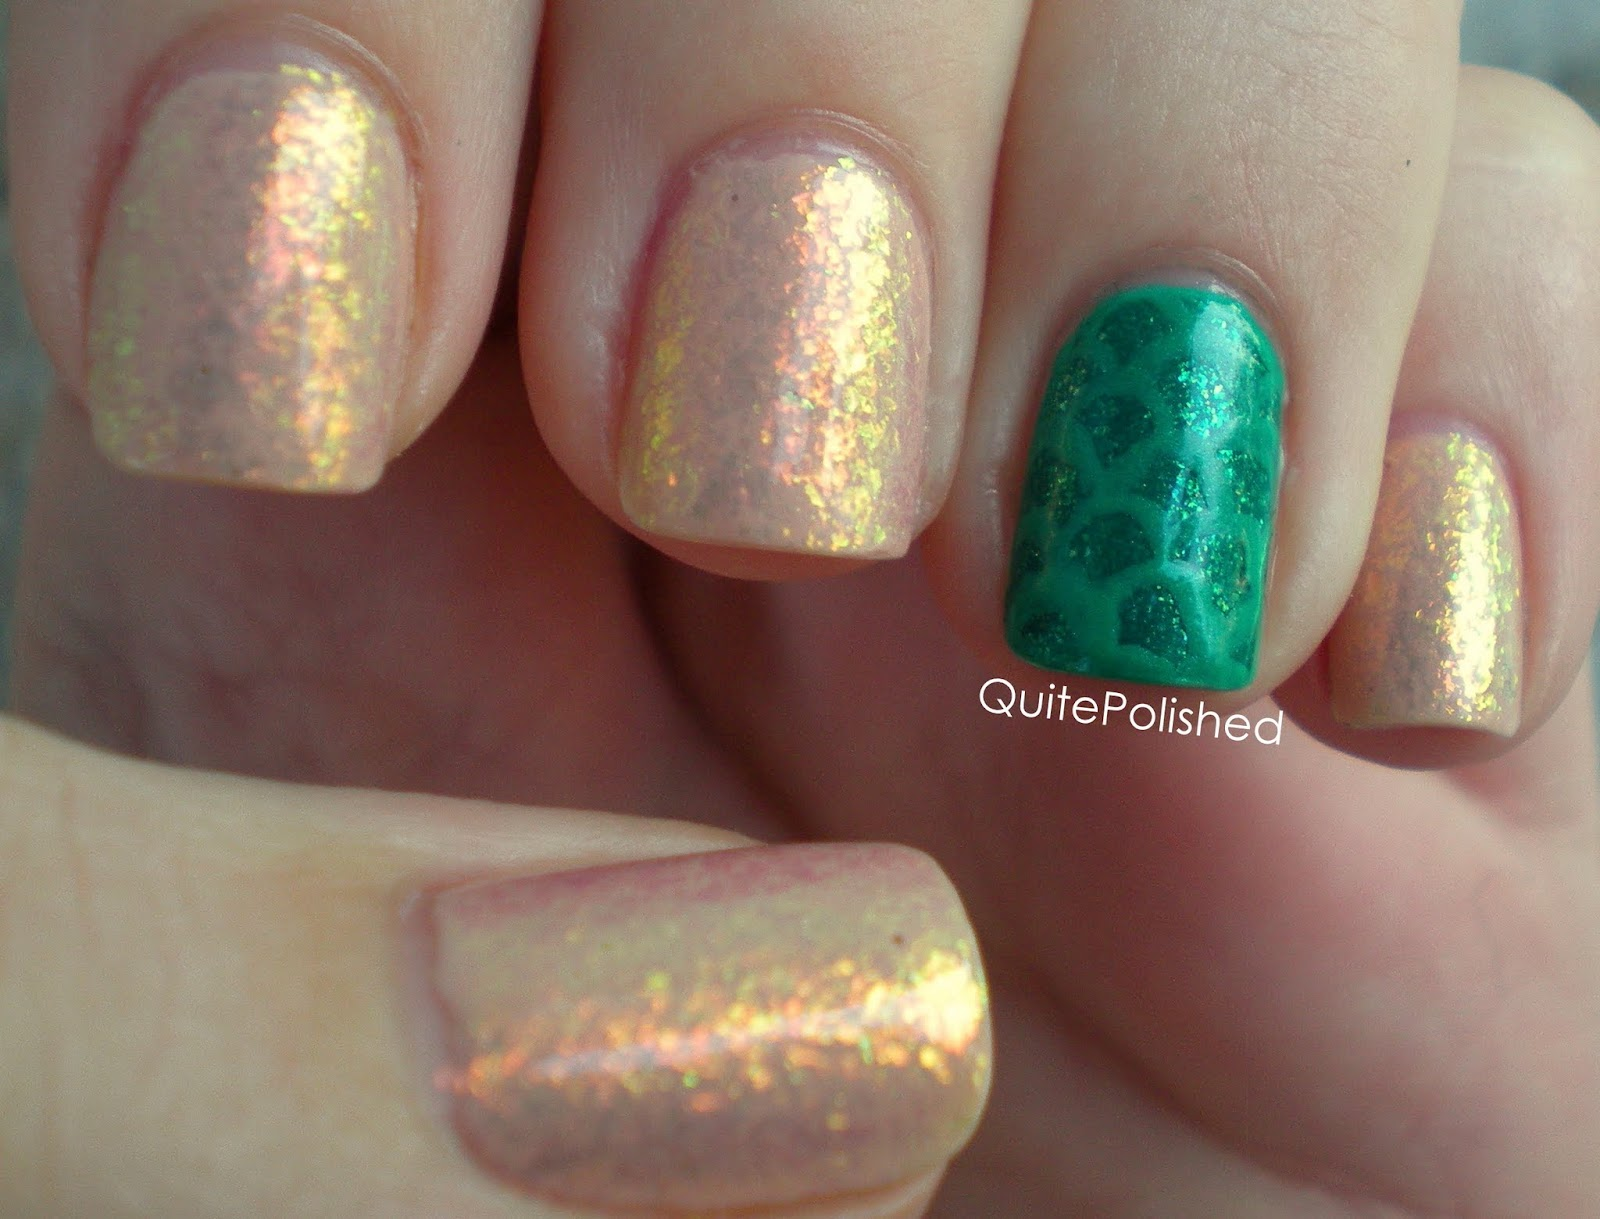 Quite Polished Mermaid Nails A Mini Lesson In Photographing Flakies